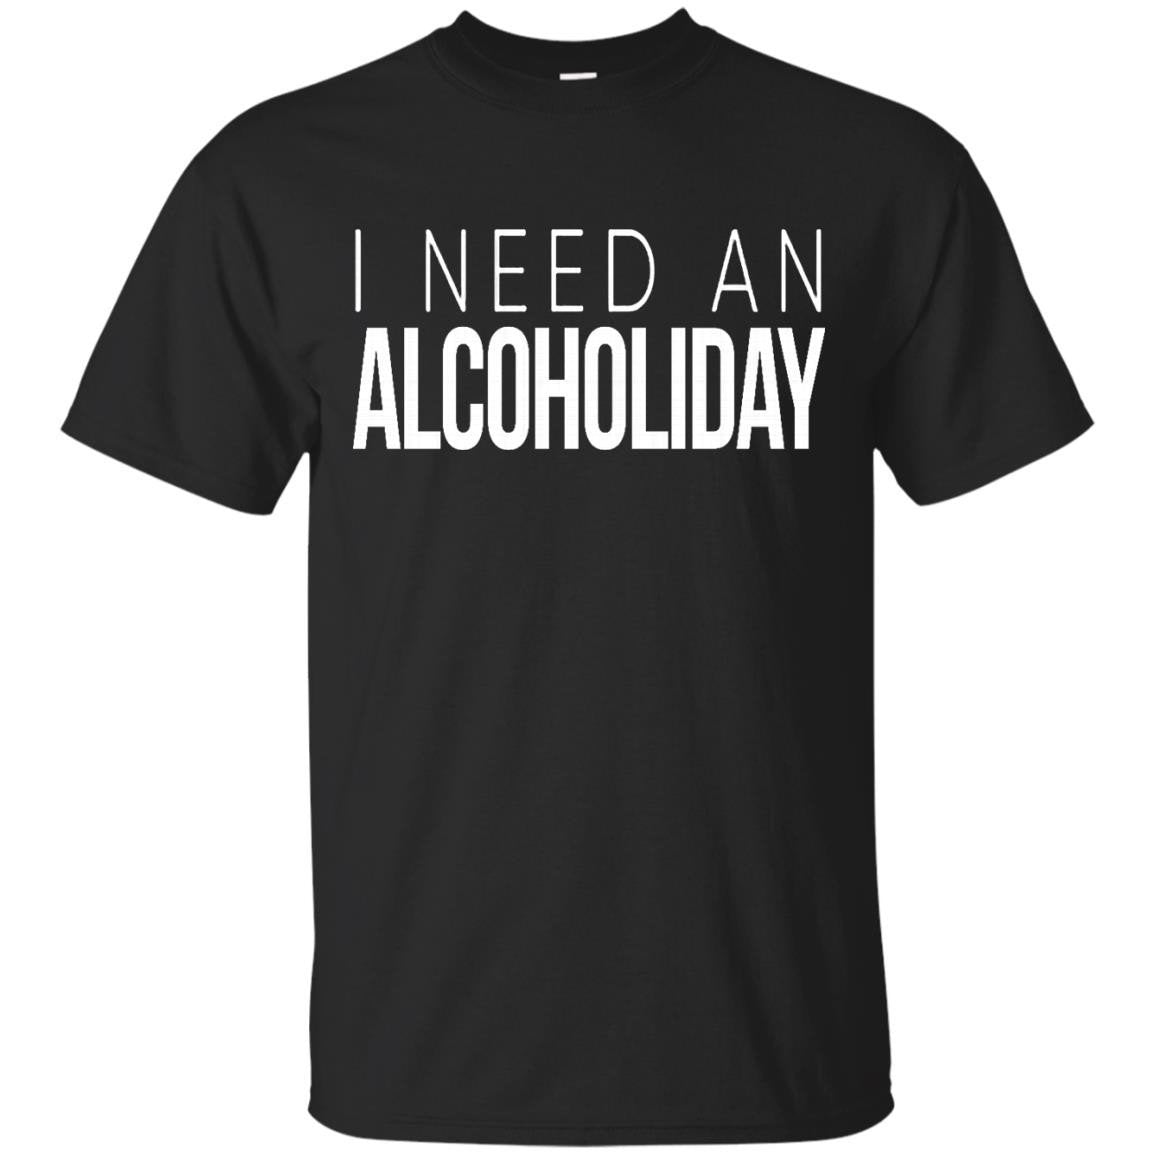 Alcohol Shirts I Need Alcoholiday T shirts Hoodies Sweatshirts